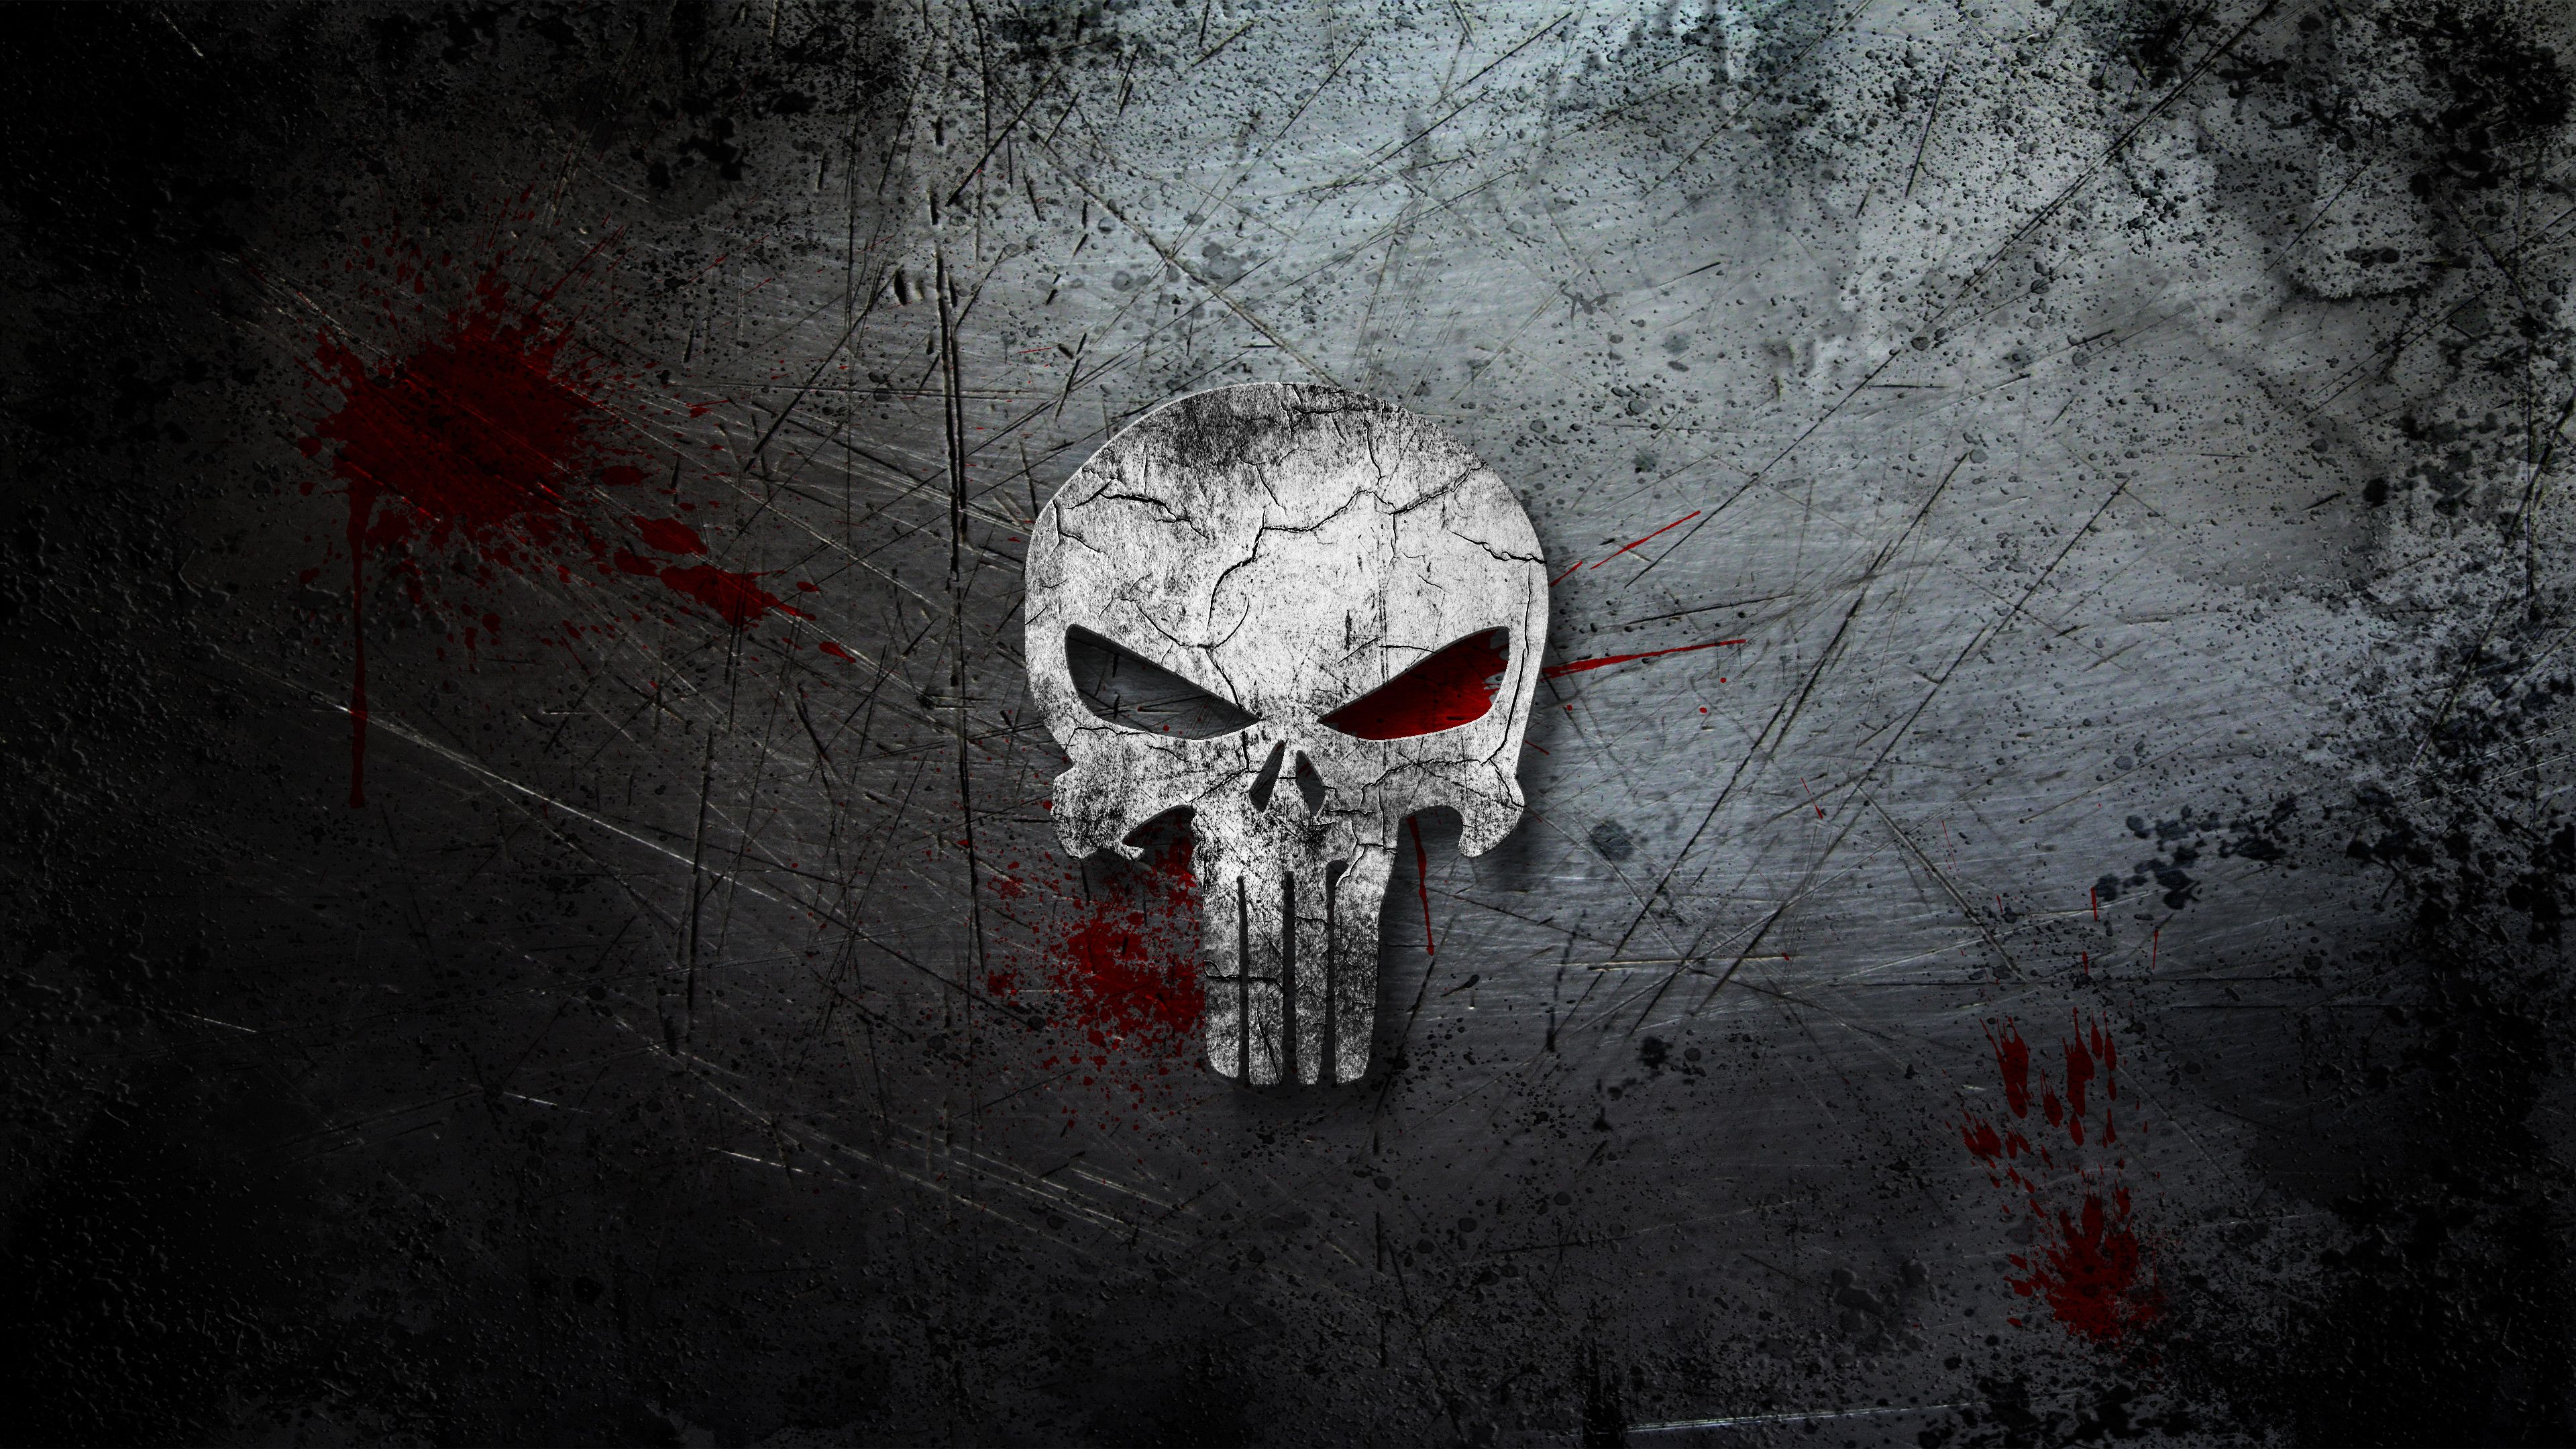 3840x2160 170 Punisher HD Wallpapers | Background Images - Wallpaper Abyss